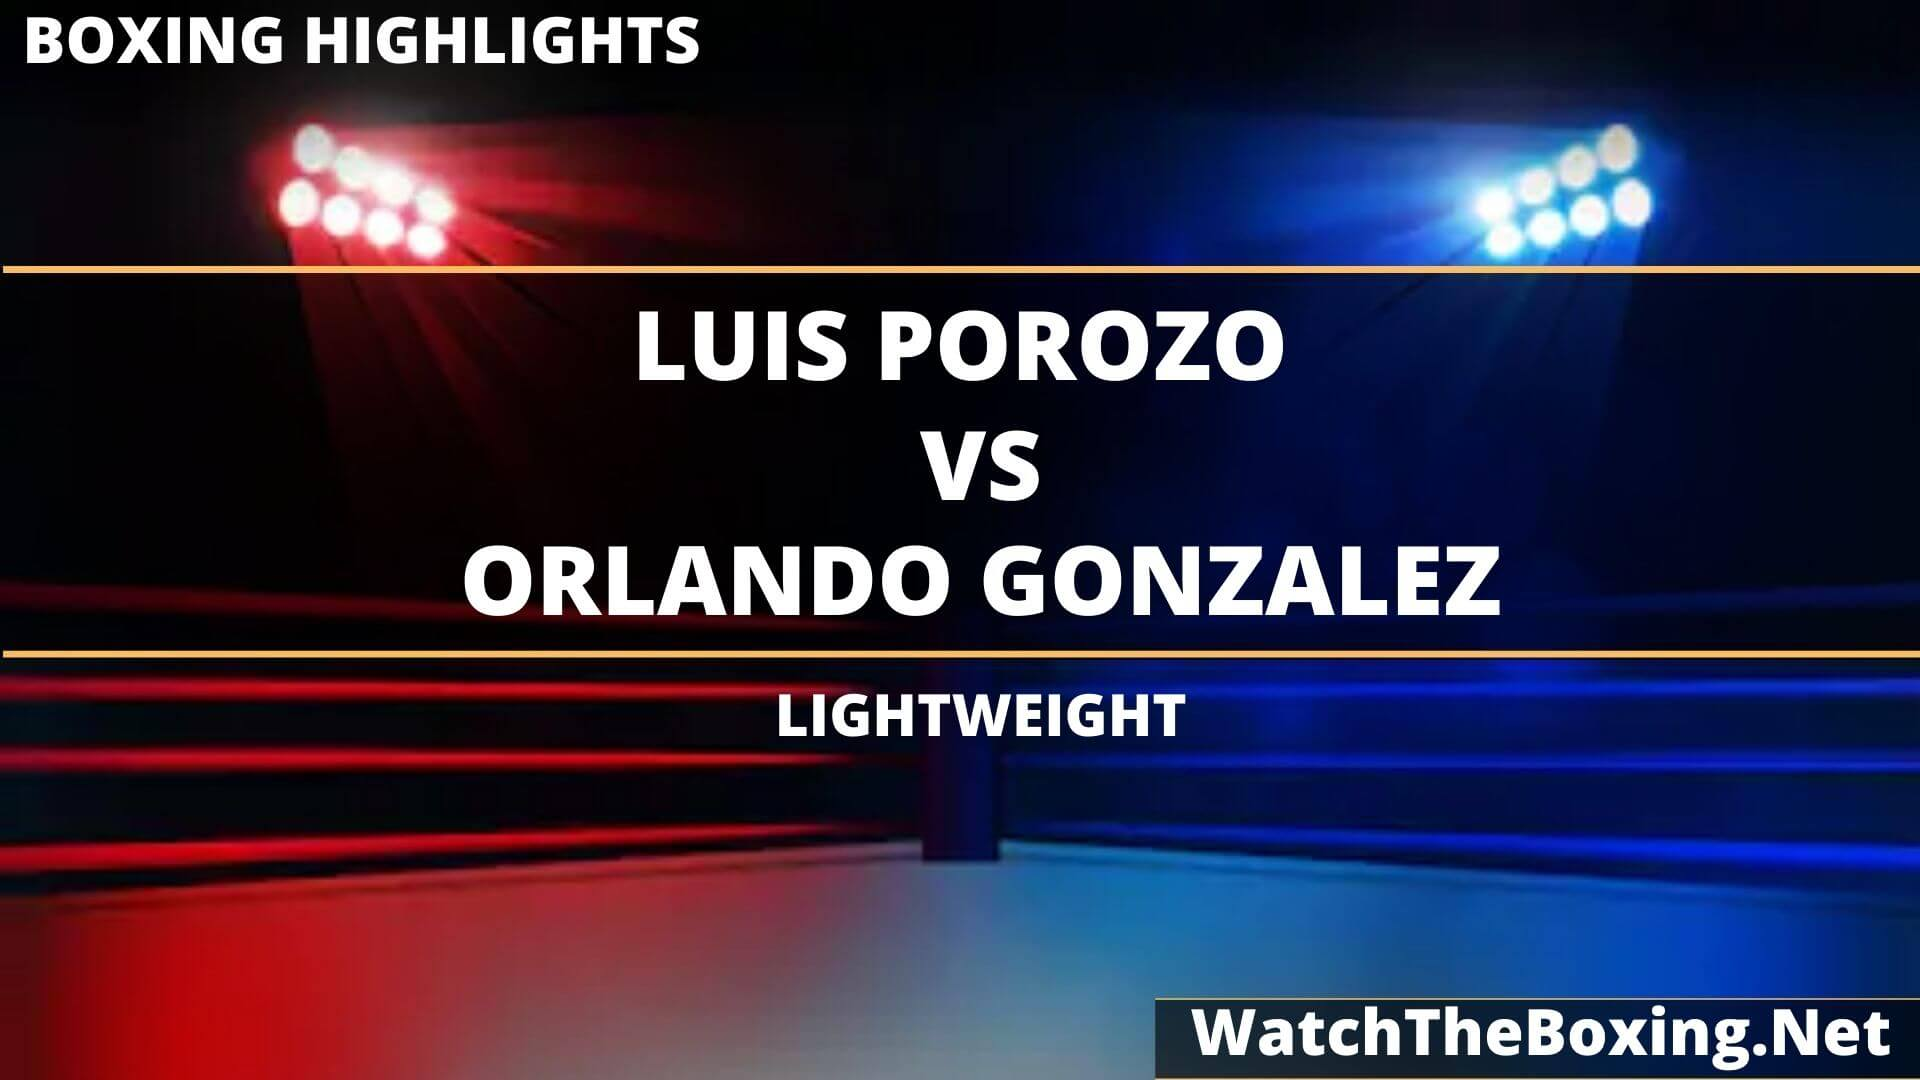 Luis Porozo Vs Orlando Gonzalez Highlights 2020 Lightweight